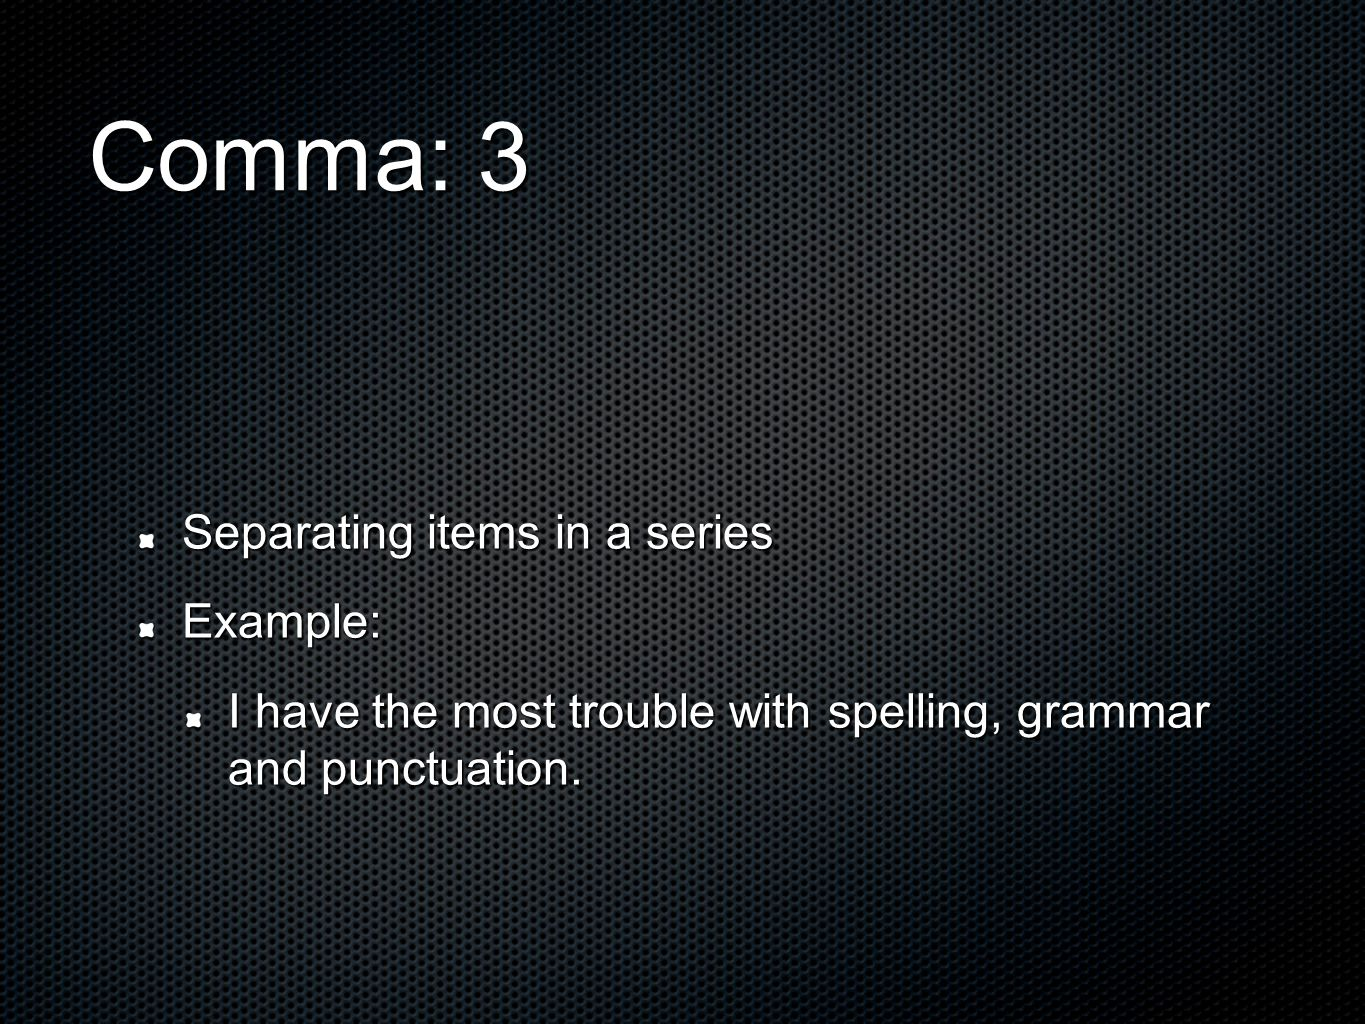 Comma: 3 Separating items in a series Example: I have the most trouble with spelling, grammar and punctuation.